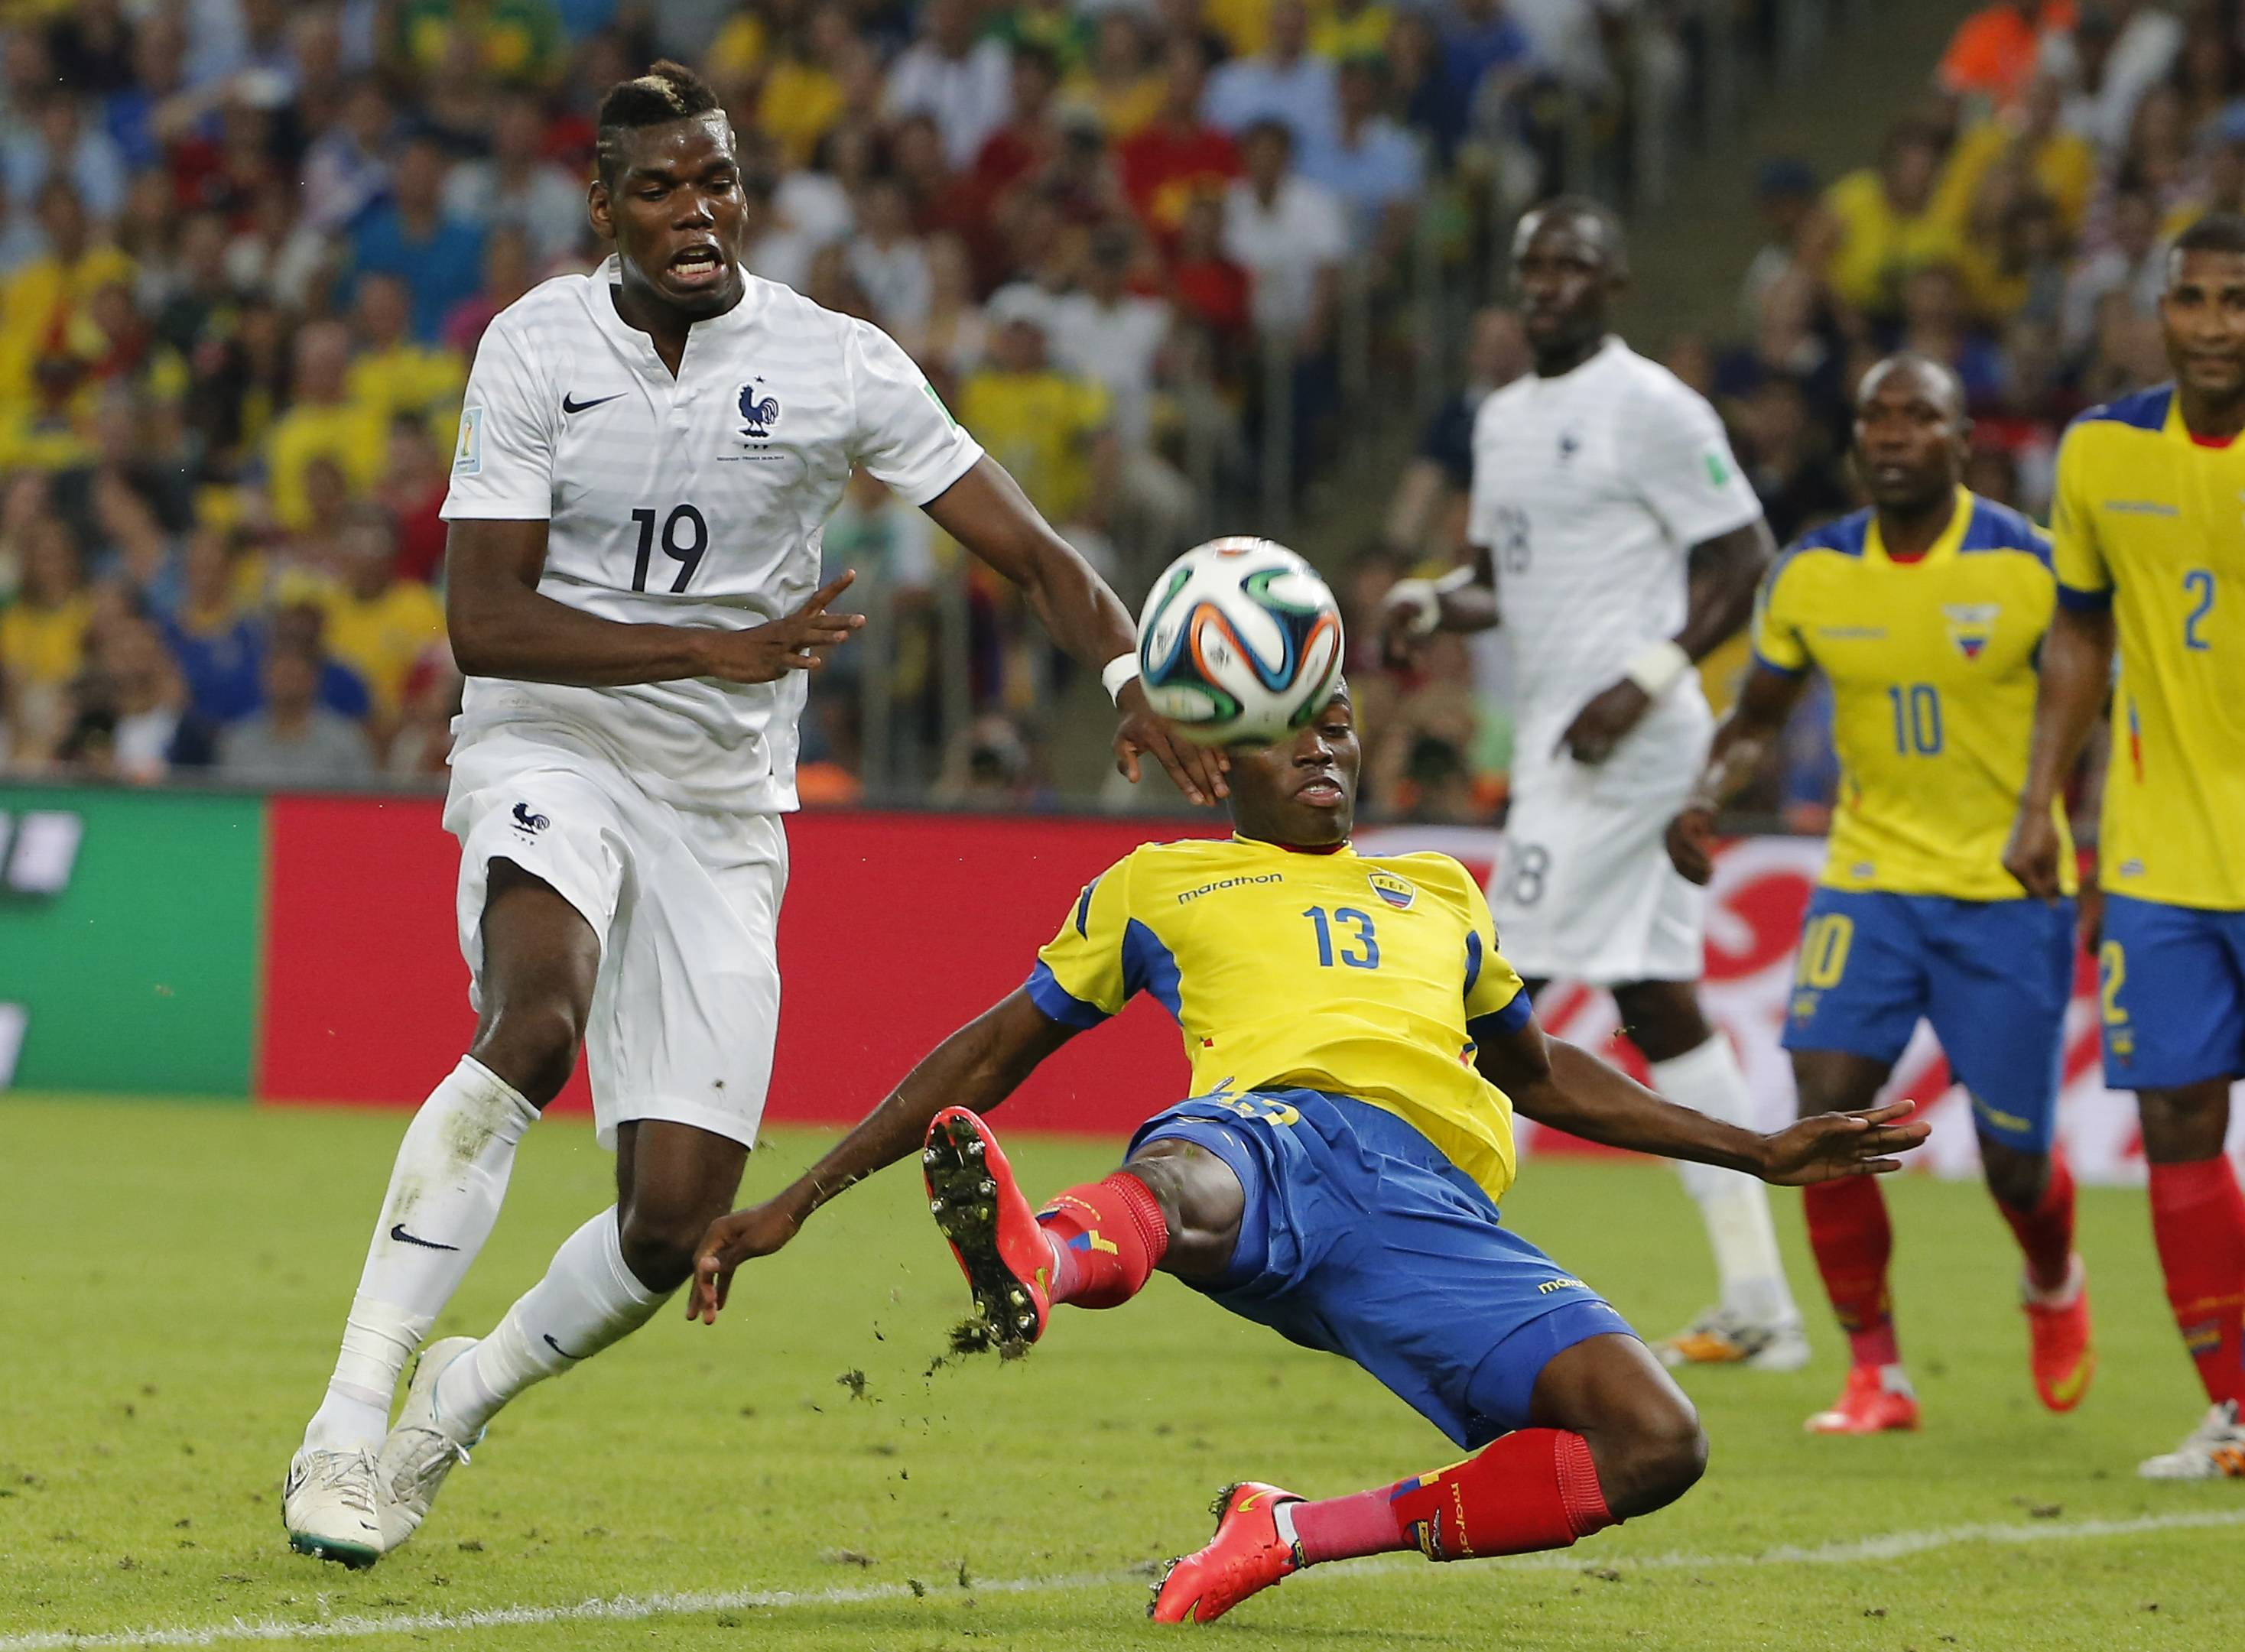 Ecuador's Enner Valencia, bottom, and France's Paul Pogba challenge for the ball during the group E World Cup soccer match between Ecuador and France at the Maracana stadium in Rio de Janeiro, Brazil, Wednesday, June 25, 2014.